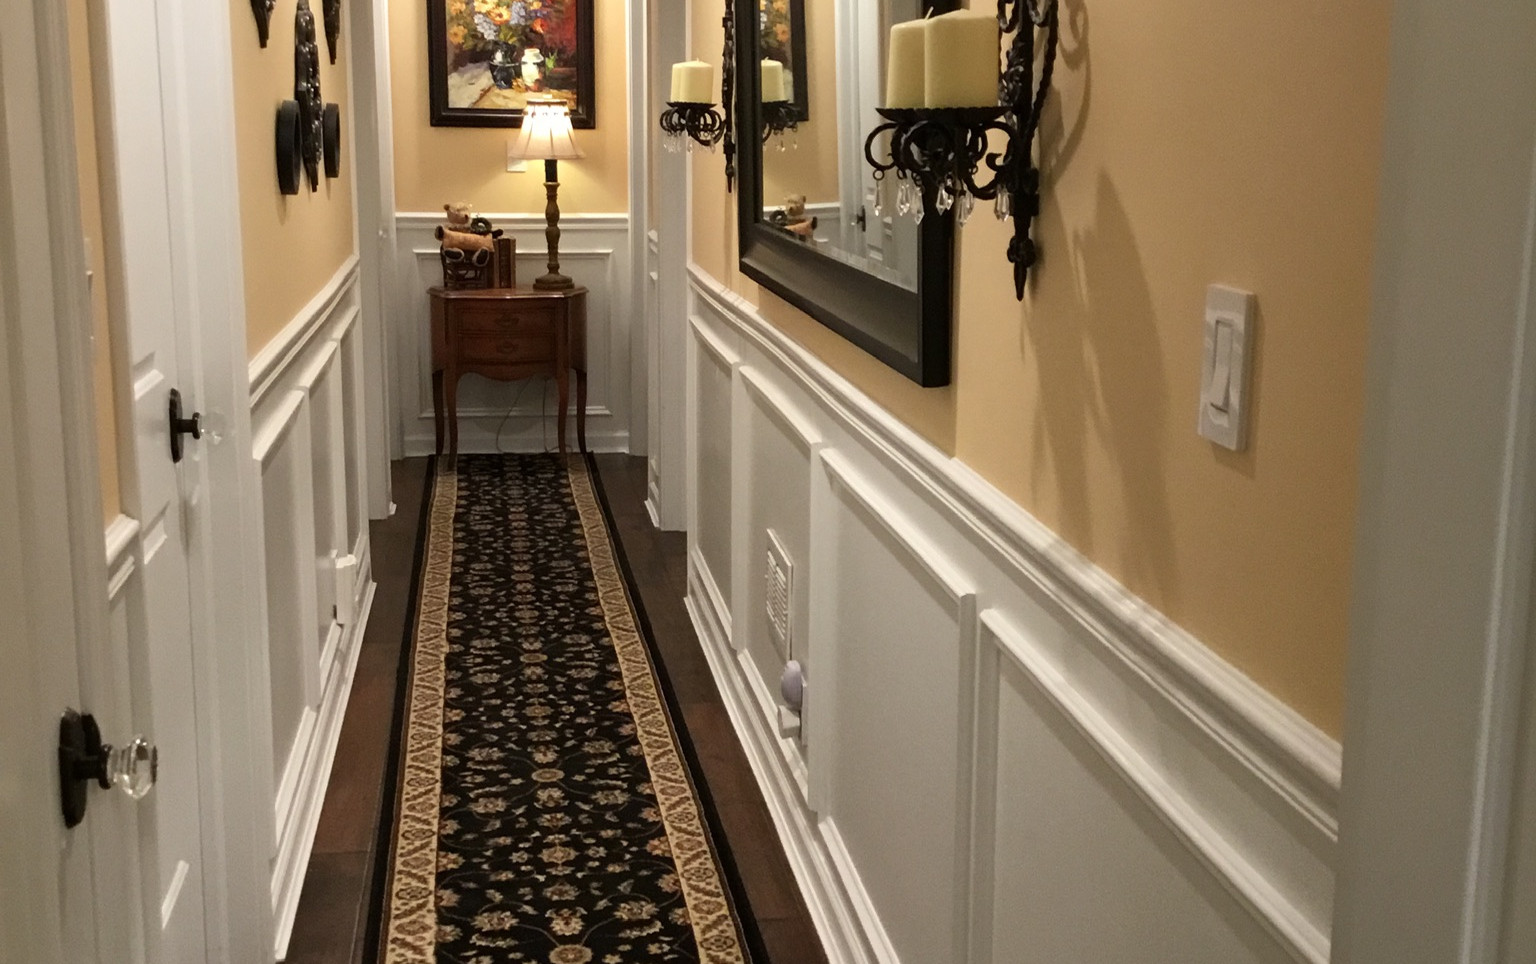 Basement Hallway With Wainscoting